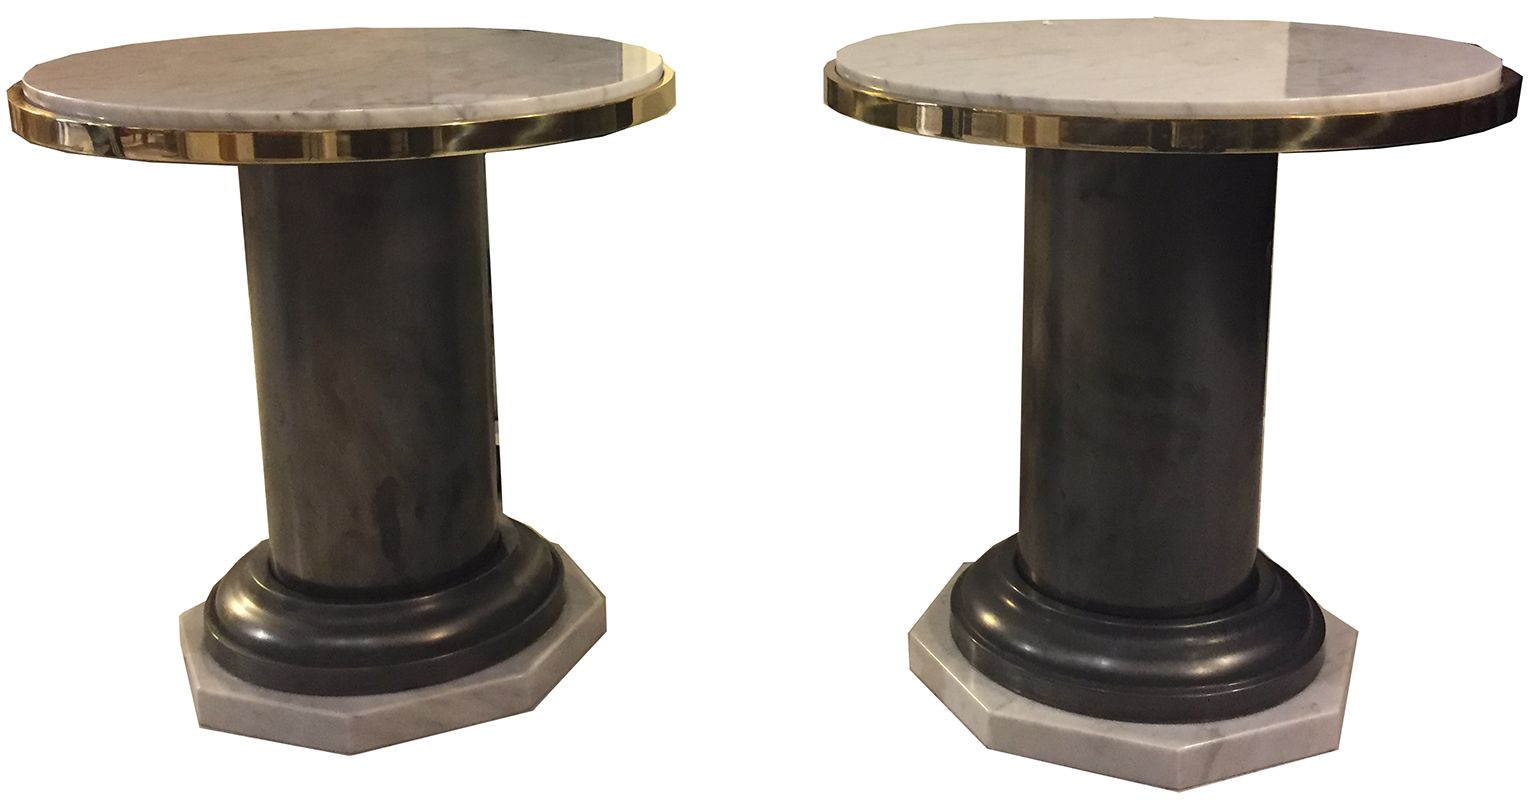 Vintage Iron And Marble Coffee Tables 1970s Set Of 2 For Sale At Pamono